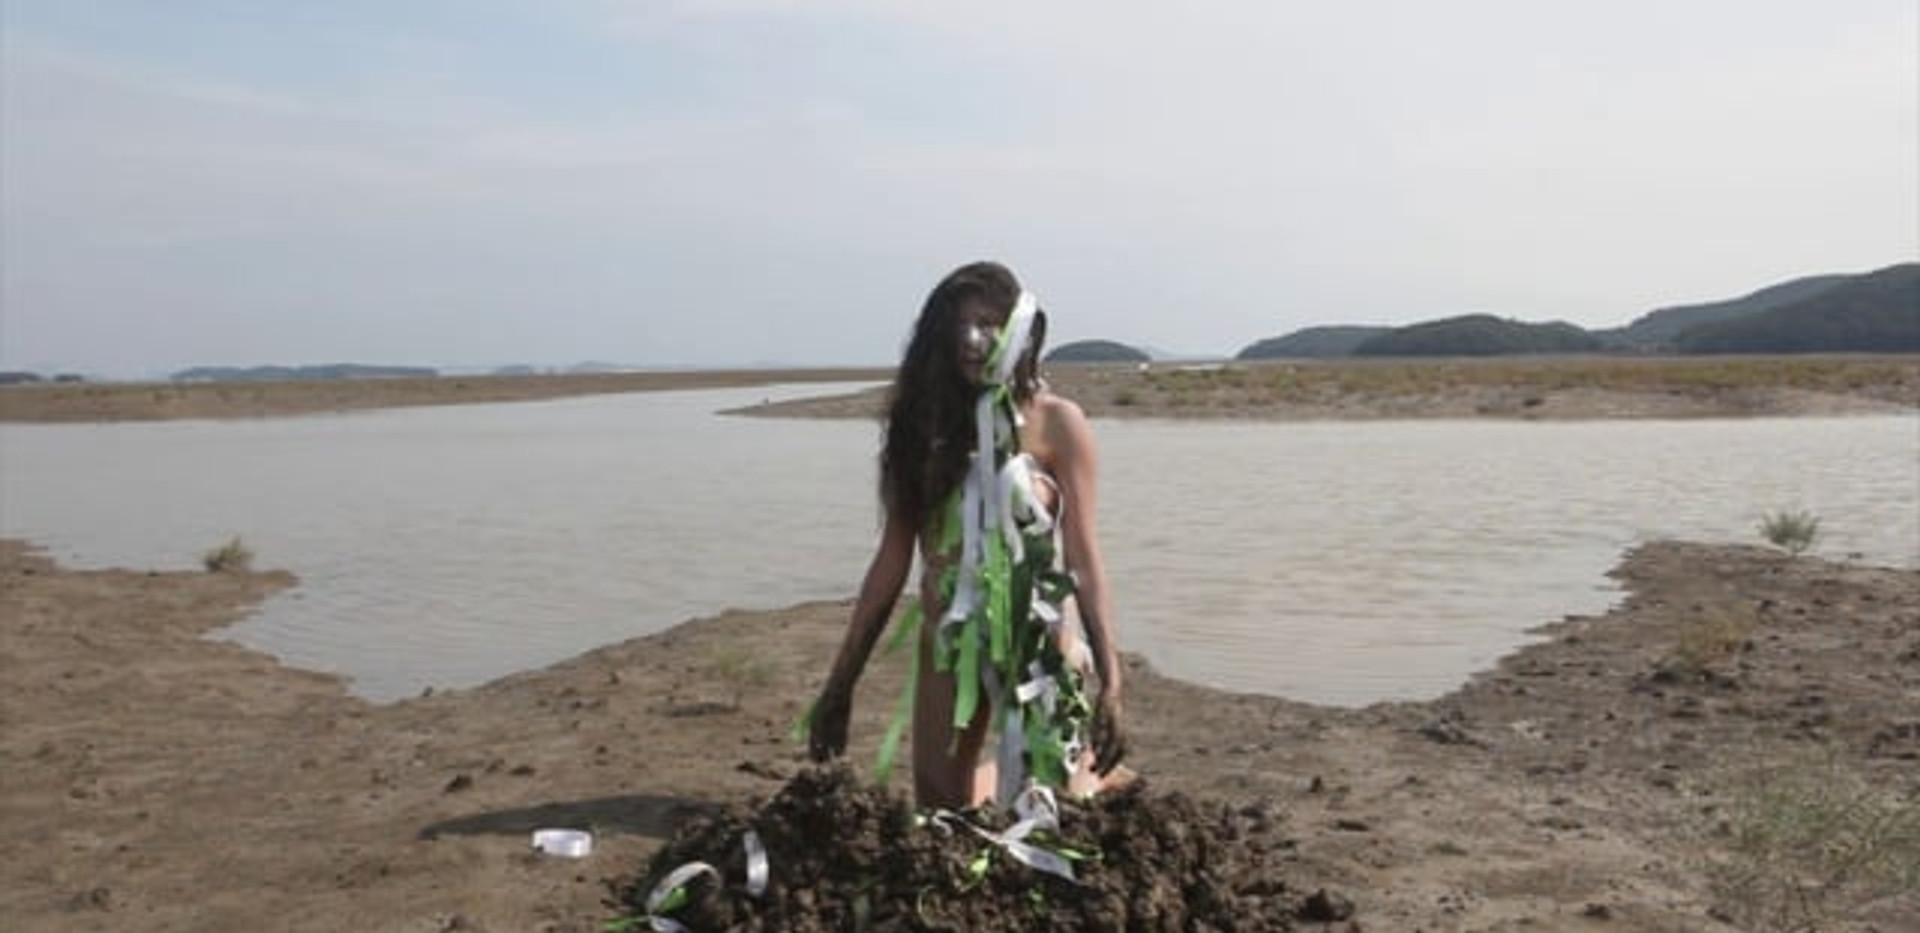 Digging wishes - South Korea 2012 - Video of performance HD Video 11:13 - Edition of 5 + 1EA